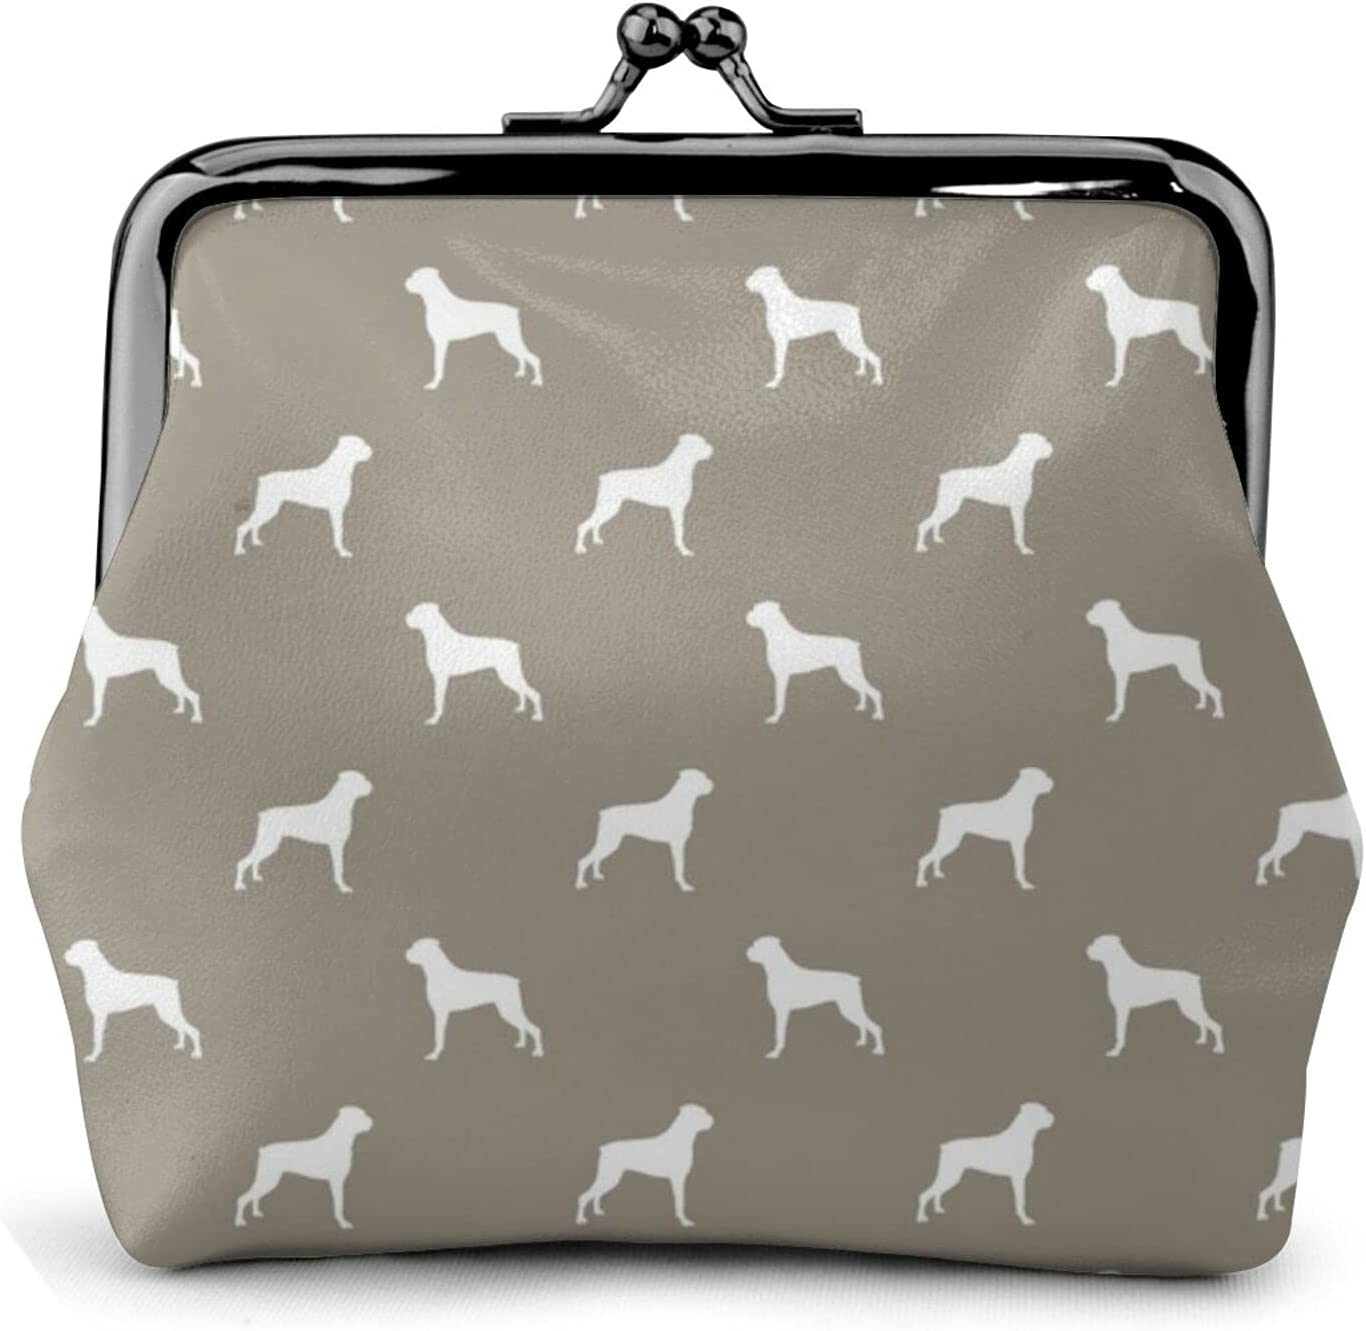 Boxer Dog Pattern 1146 Leather Coin Purse Kiss Lock Change Pouch Vintage Clasp Closure Buckle Wallet Small Women Gift